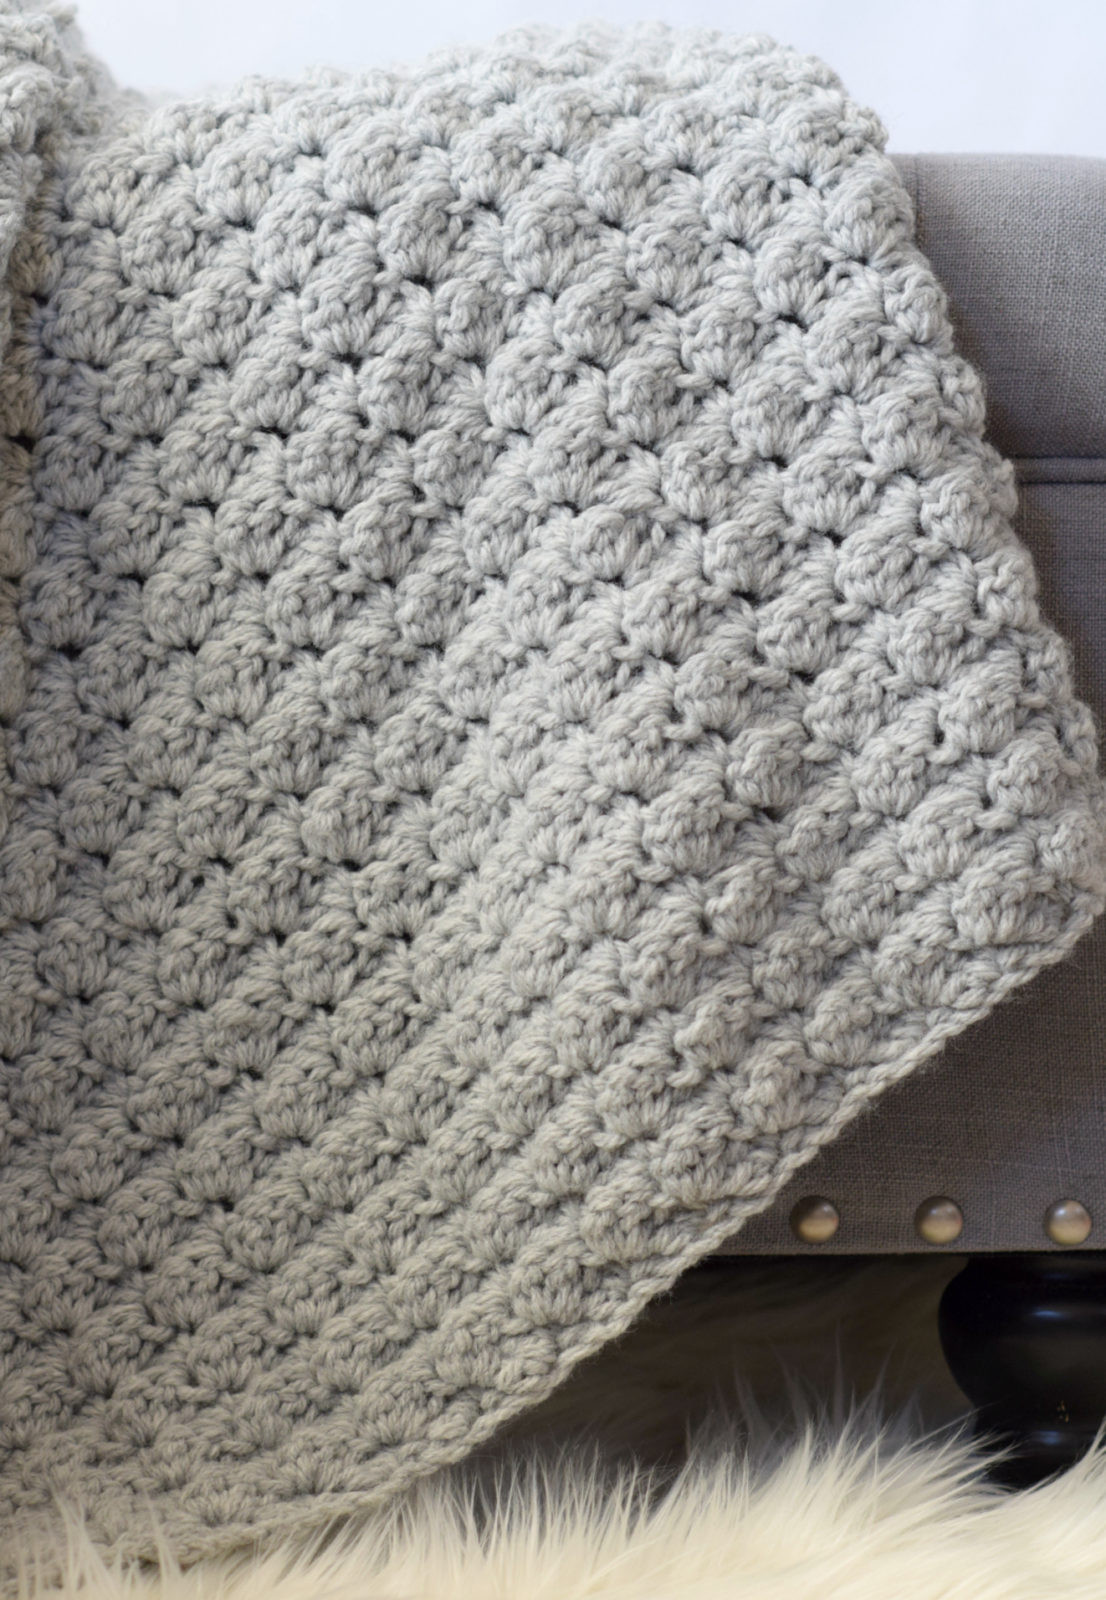 Easy Crochet Throw Patterns Best Of Simple Crocheted Blanket Go to Pattern – Mama In A Stitch Of New 47 Pictures Easy Crochet Throw Patterns